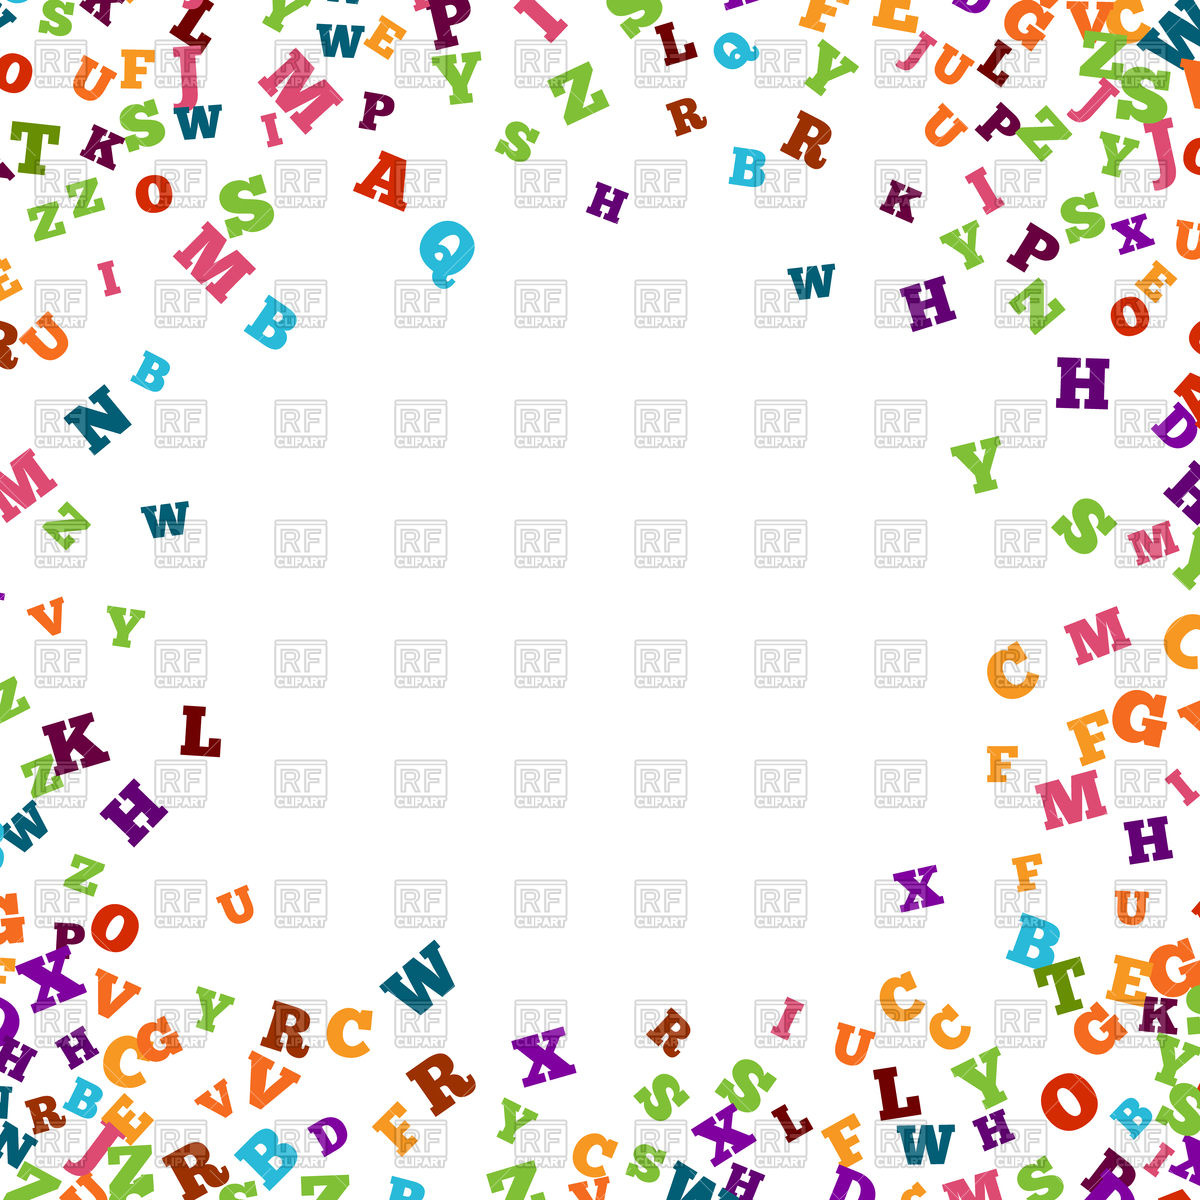 Alphabet people clipart border - ClipartFest clip royalty free download